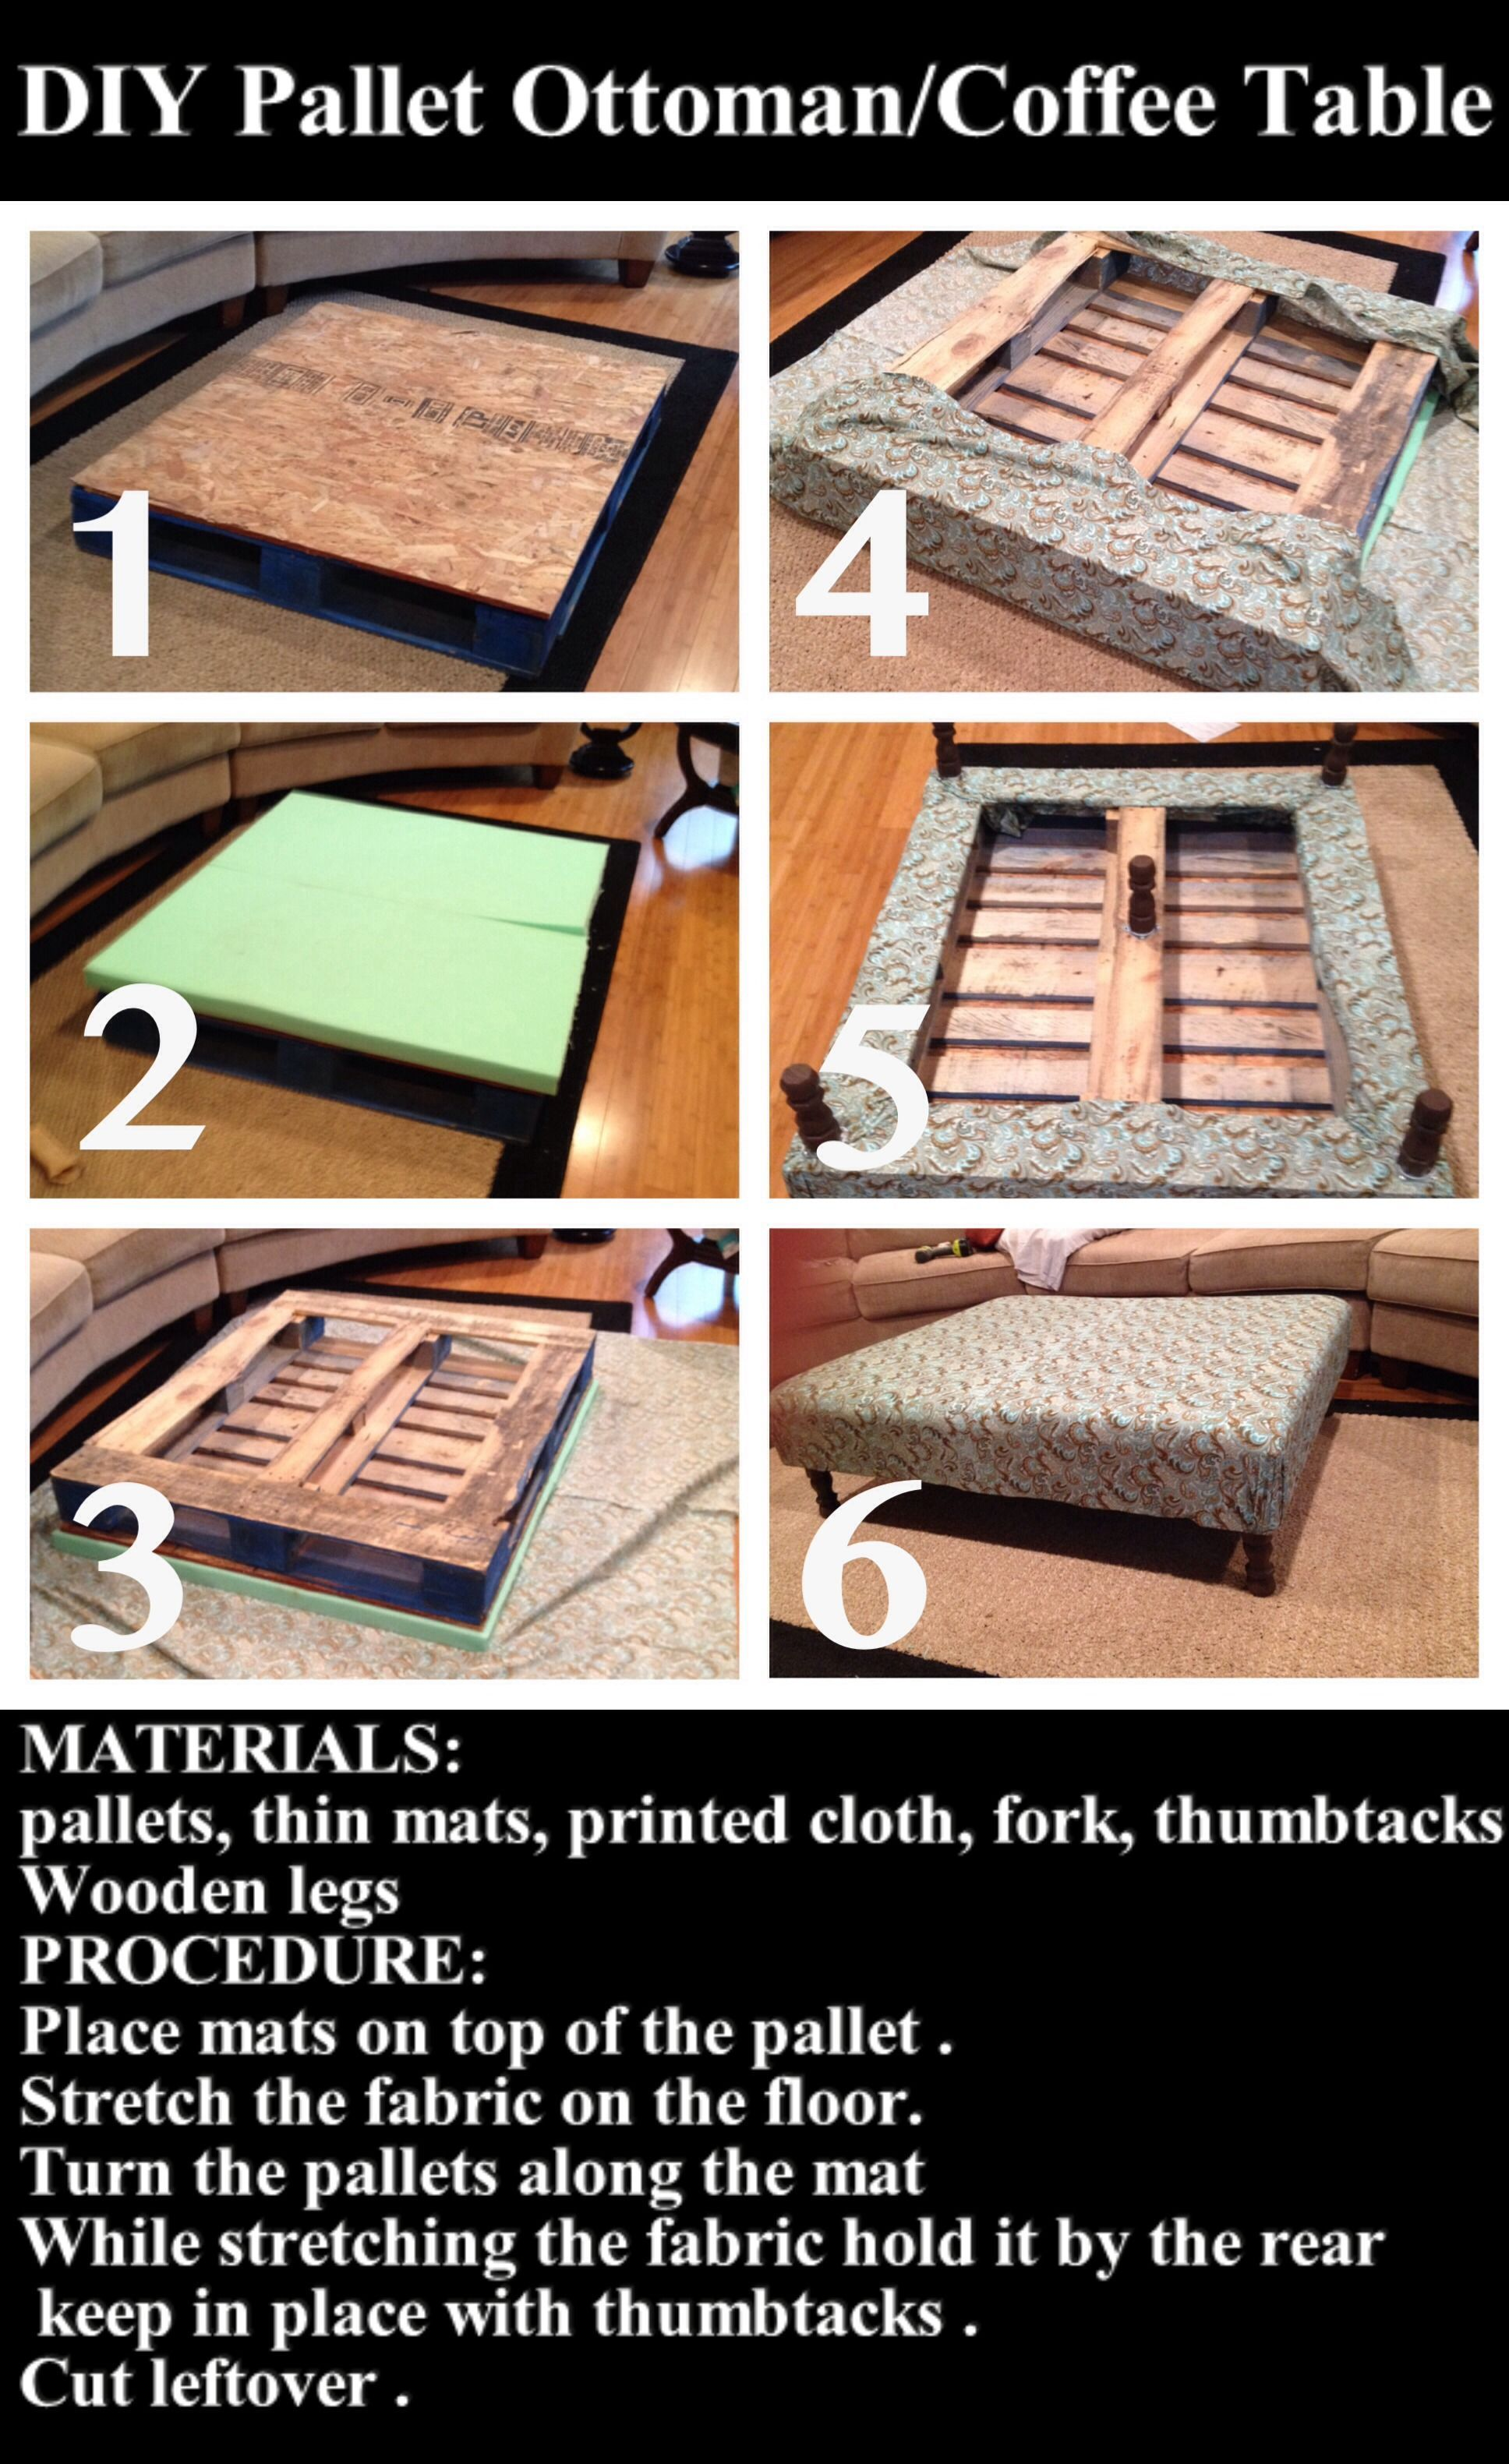 Diy Pallet Ottoman Coffee Table Pictures Photos And